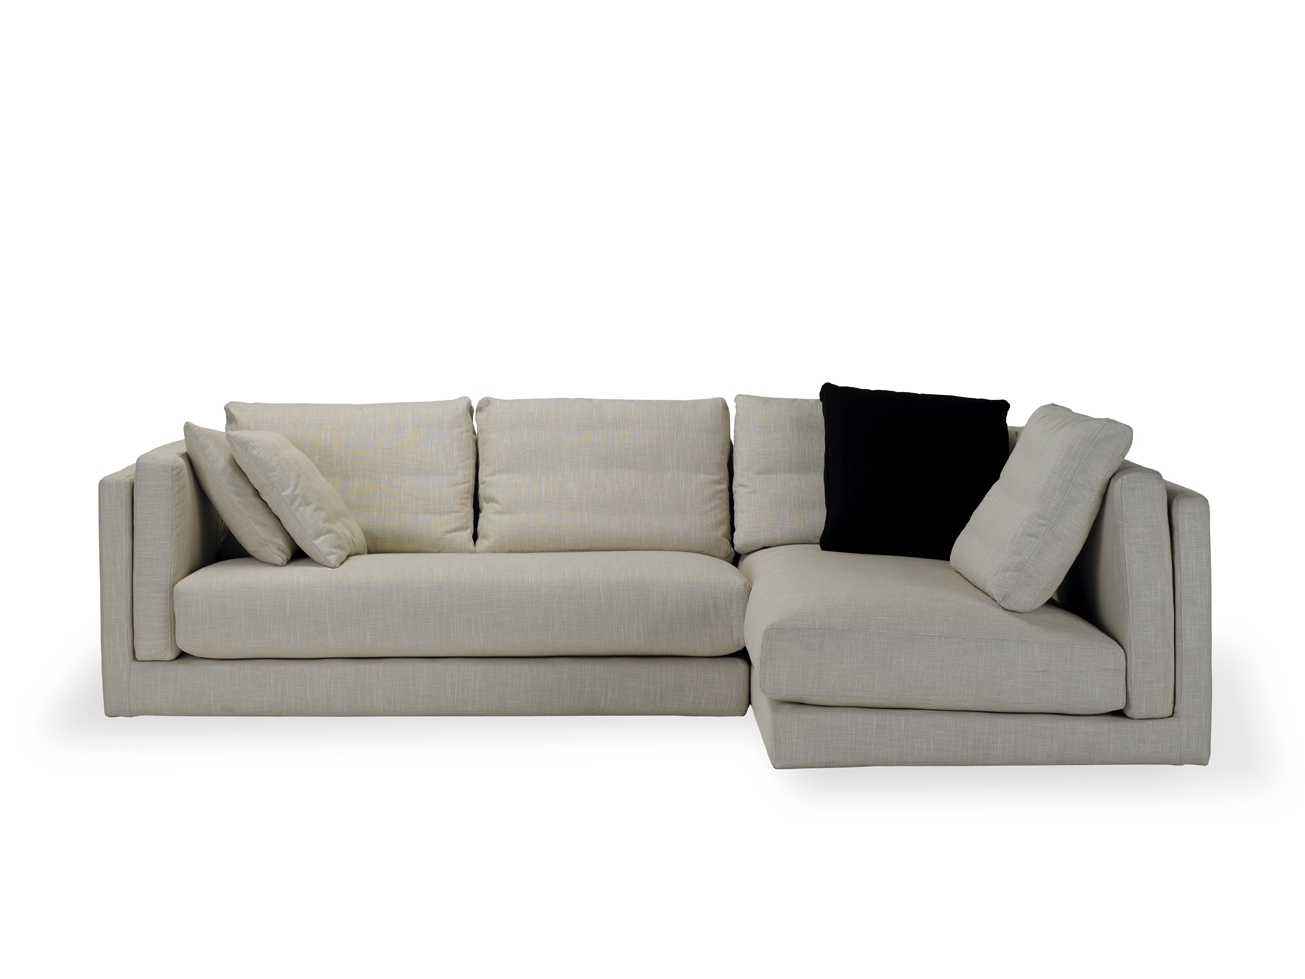 Domison » Mirabel Sofa Within Current Low Sofas (View 13 of 15)